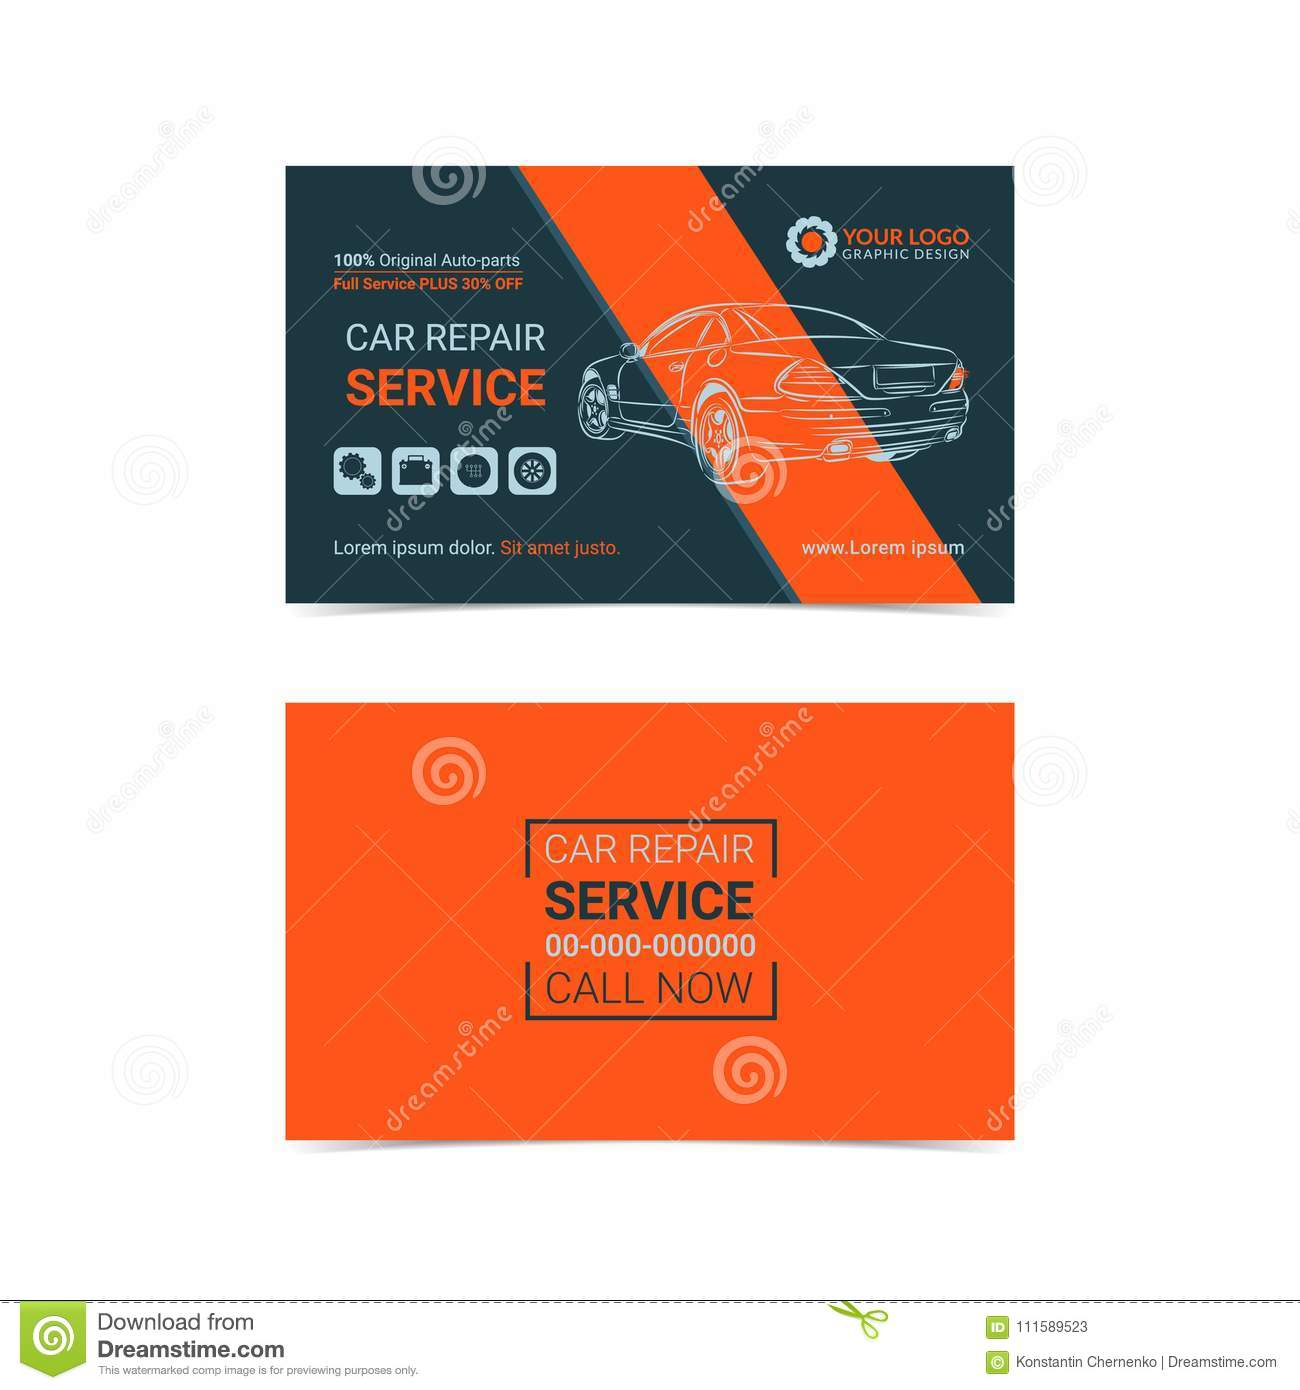 Automotive Repair Service Business Cards Layout Templates. Create ...